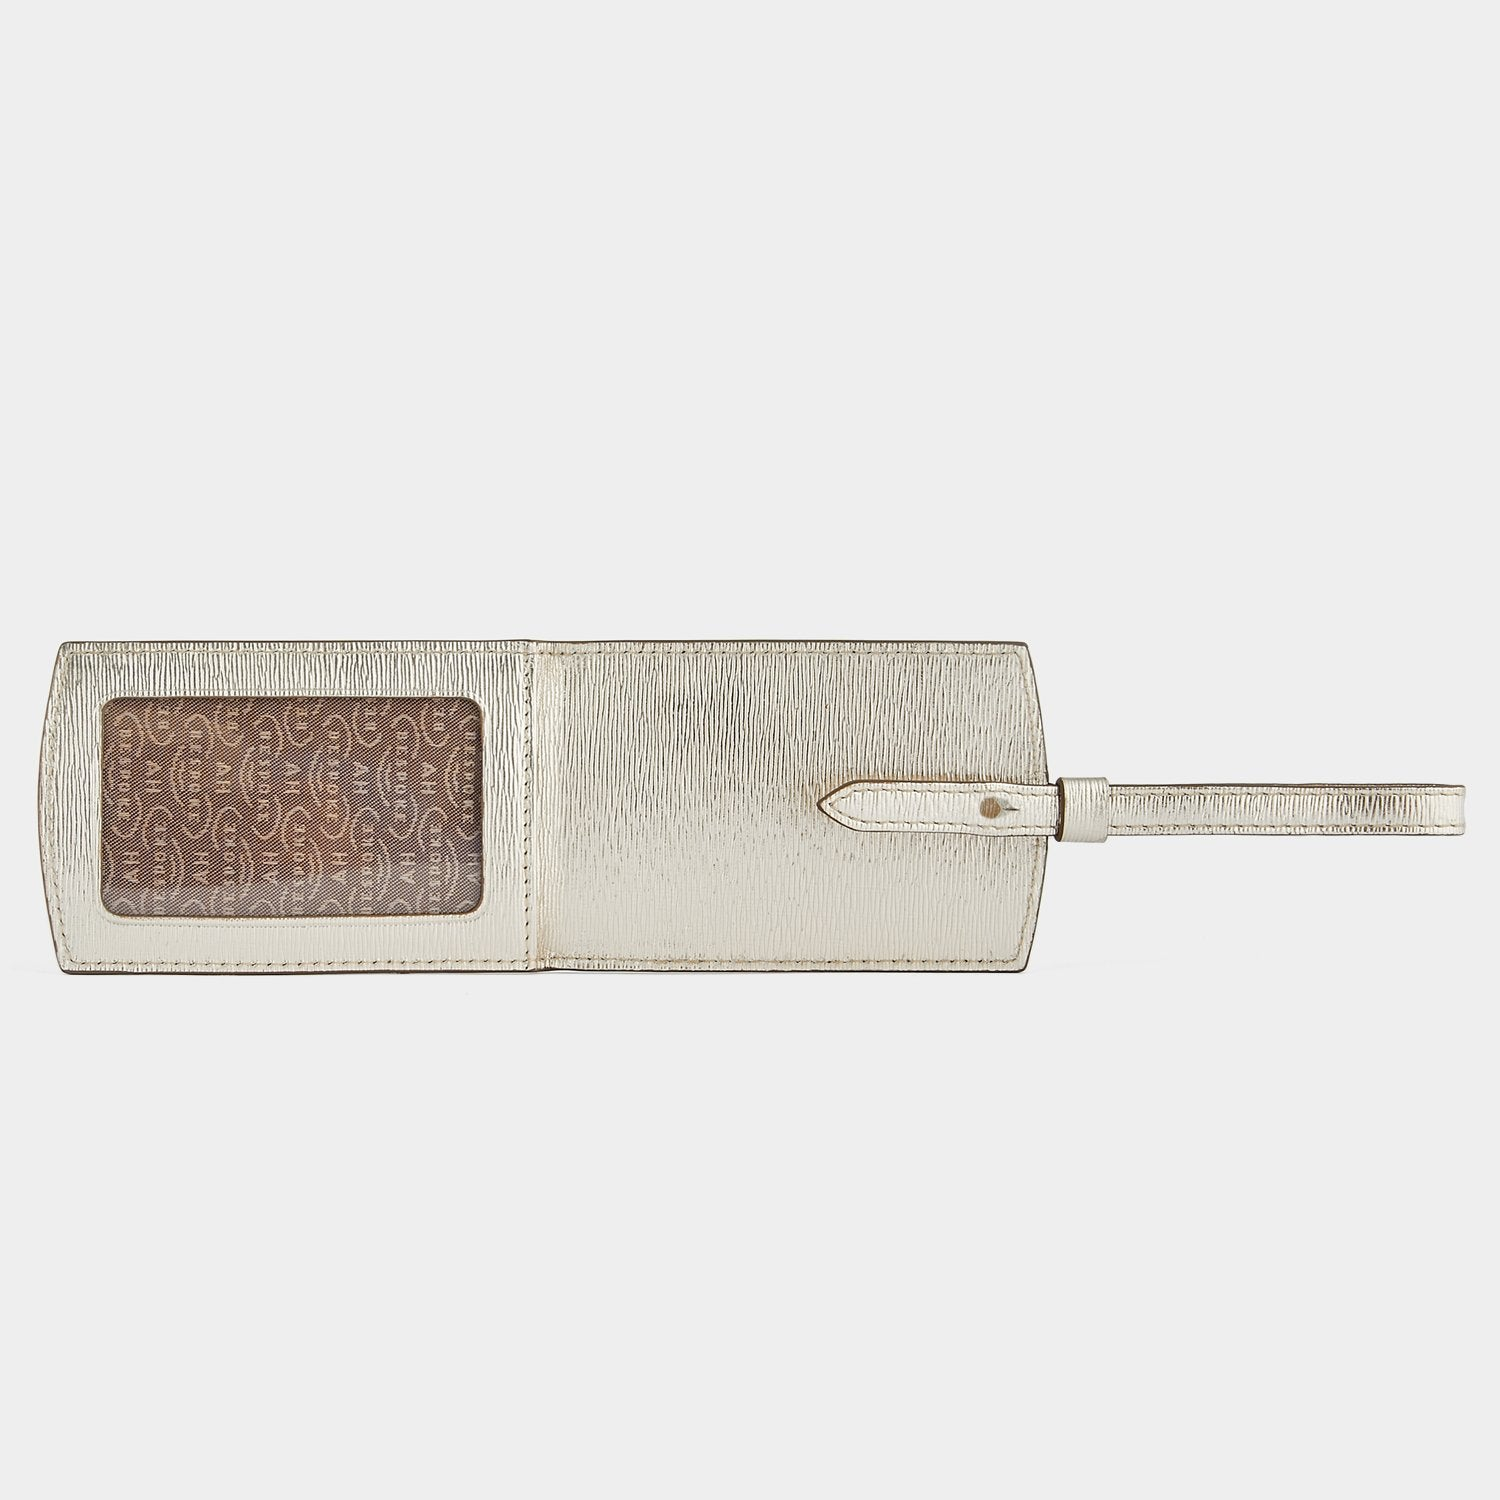 Bespoke Luggage Tag